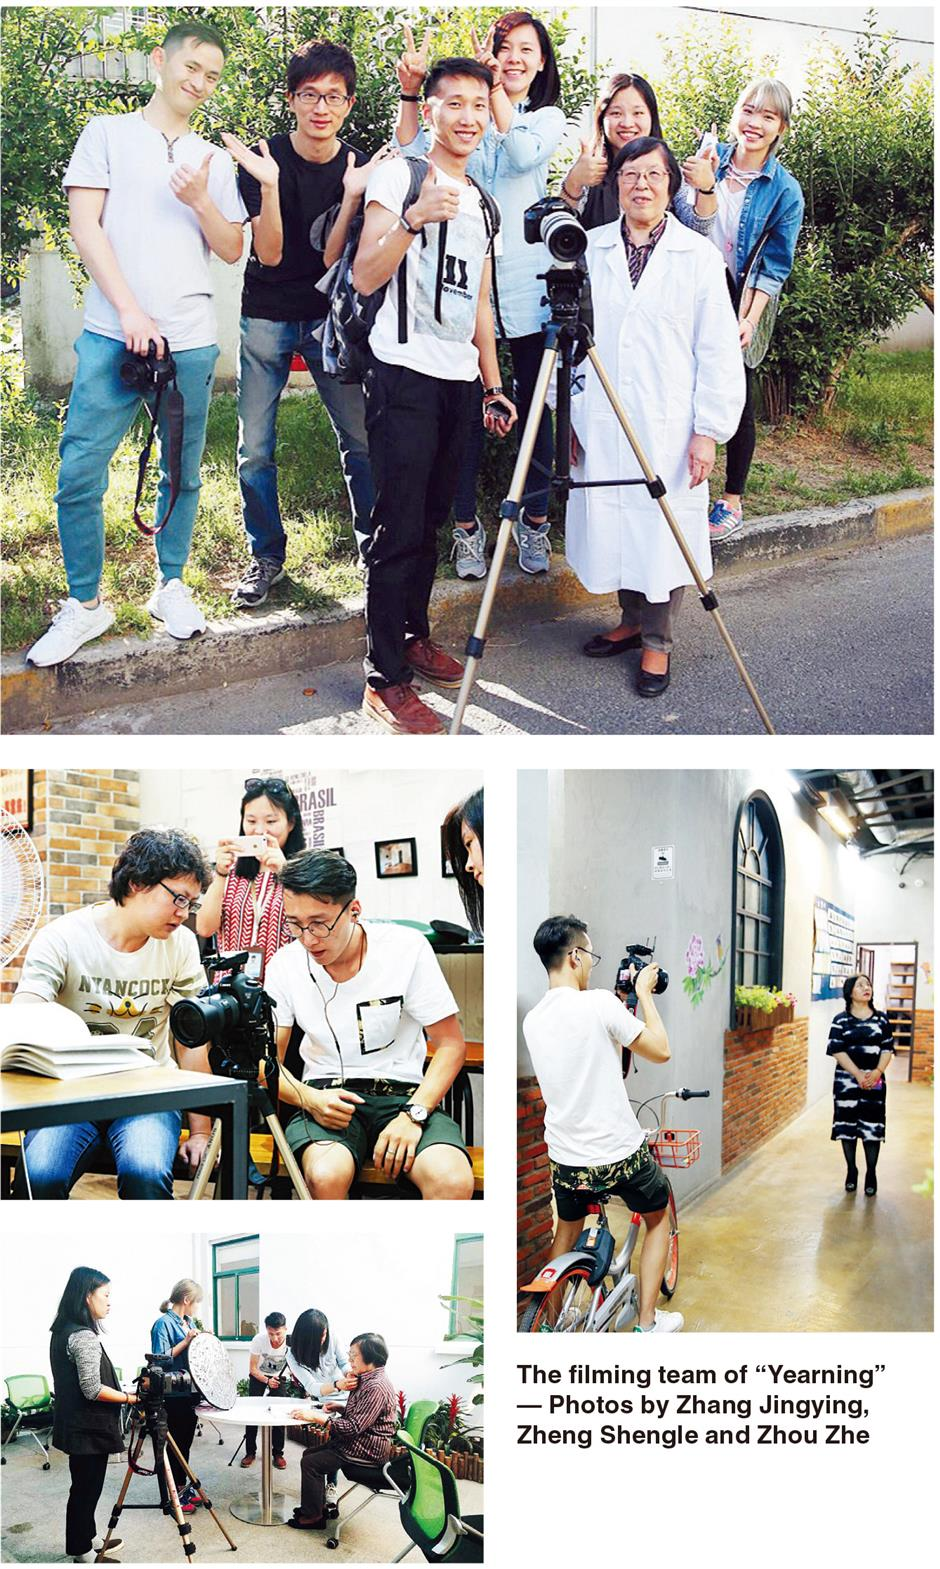 Ordinary people's tales enthral WeChat viewers